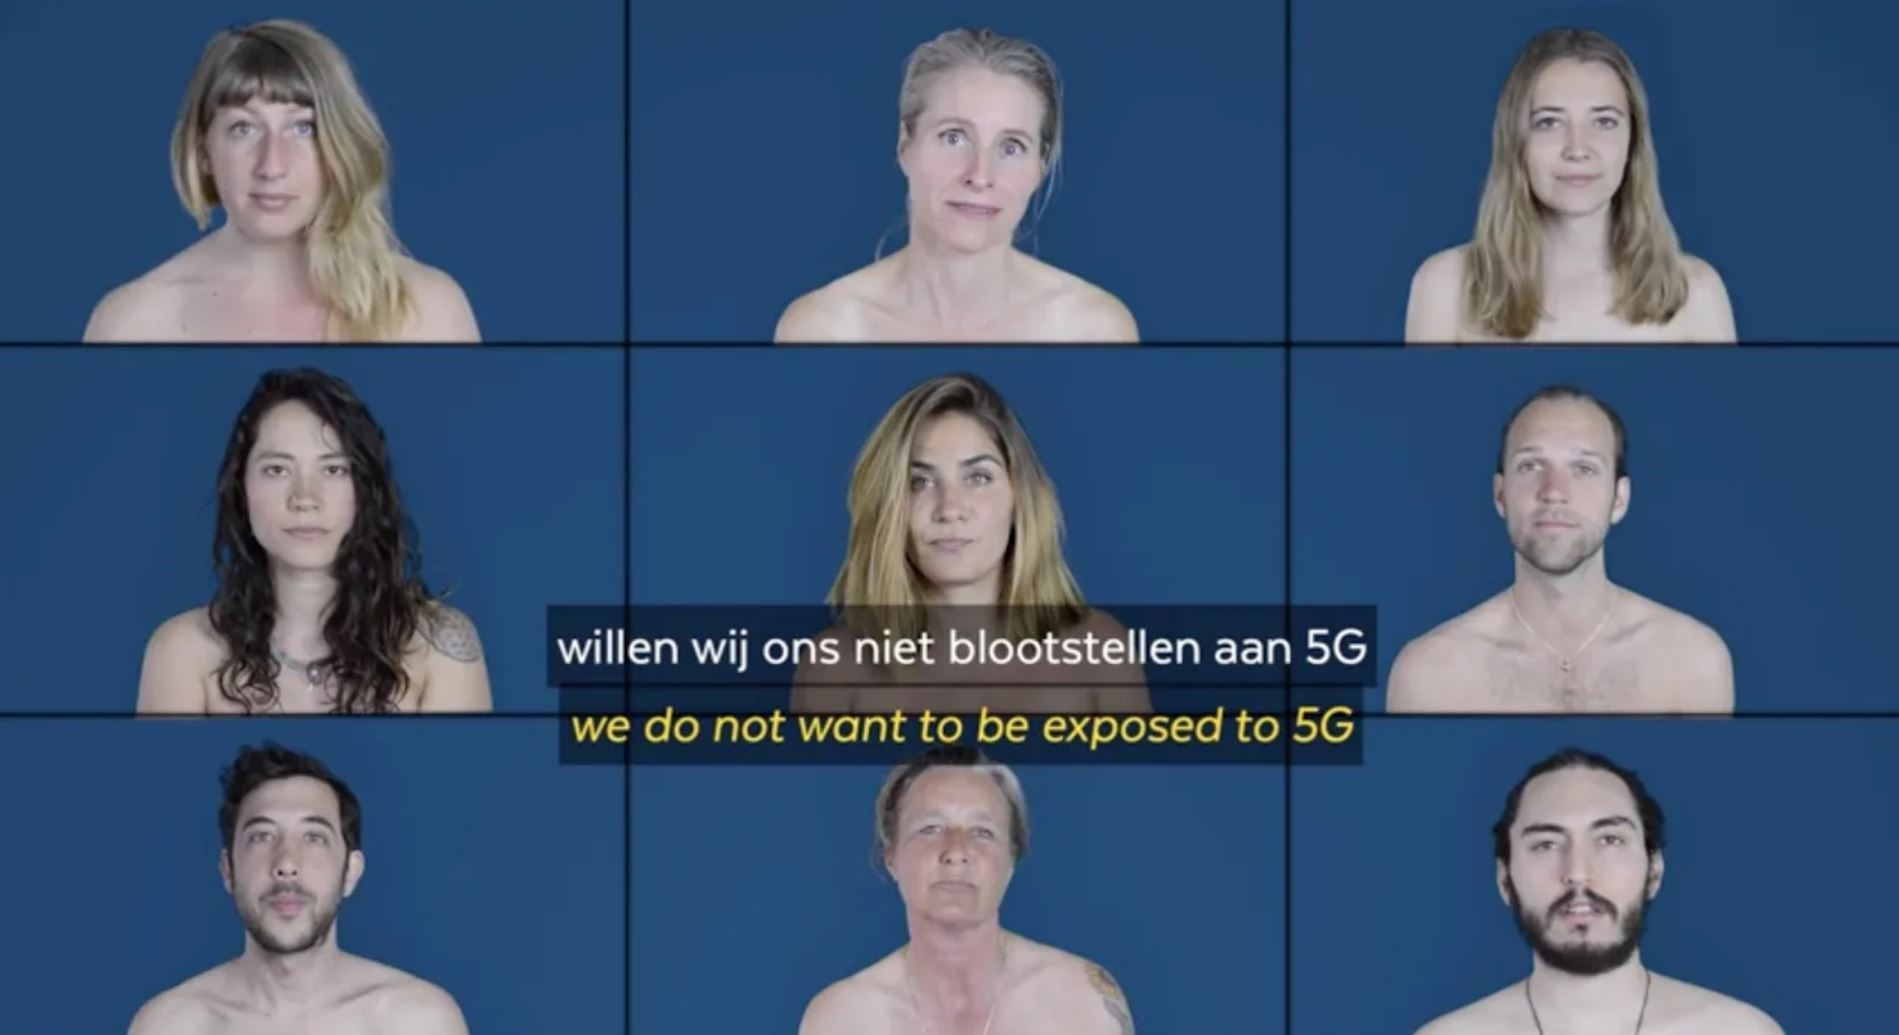 """""""The Naked Truth About 5G"""": Dutch Citizens Produce Video to Appeal to Their Prime Minister"""